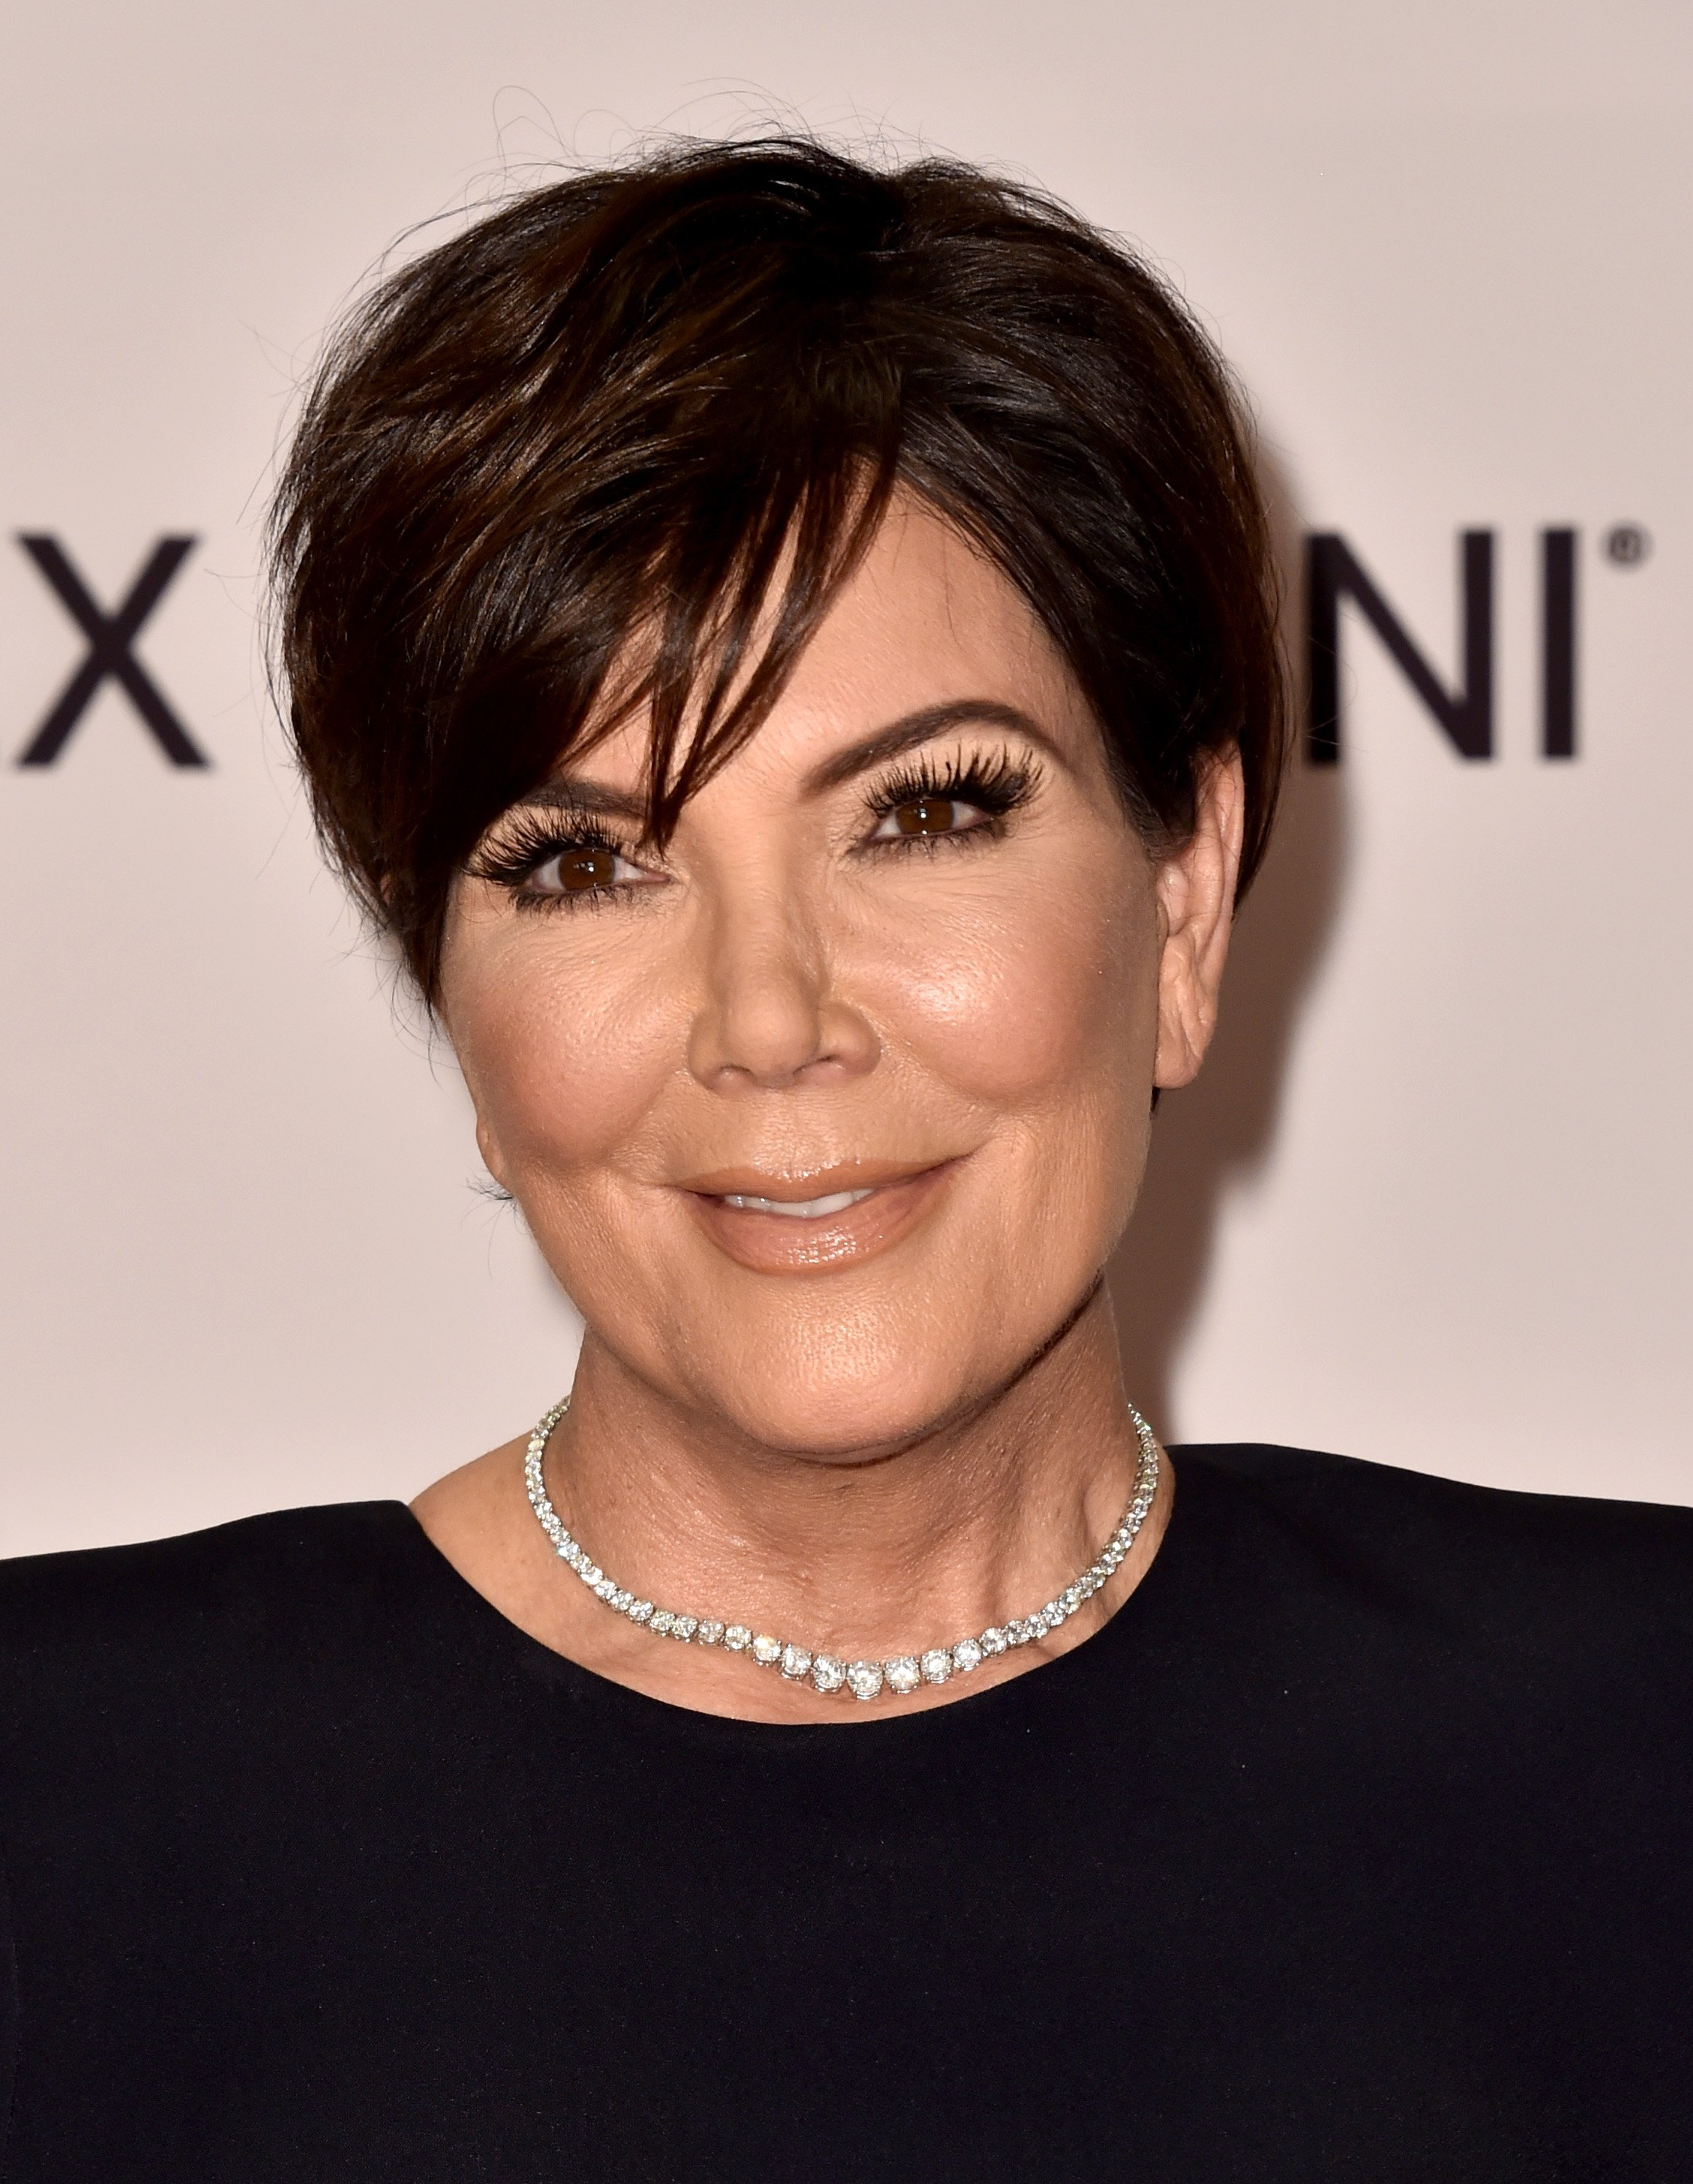 Kris Jenner at the 24th Annual Race To Erase MS Gala in May 2017. | Photo: Getty Images